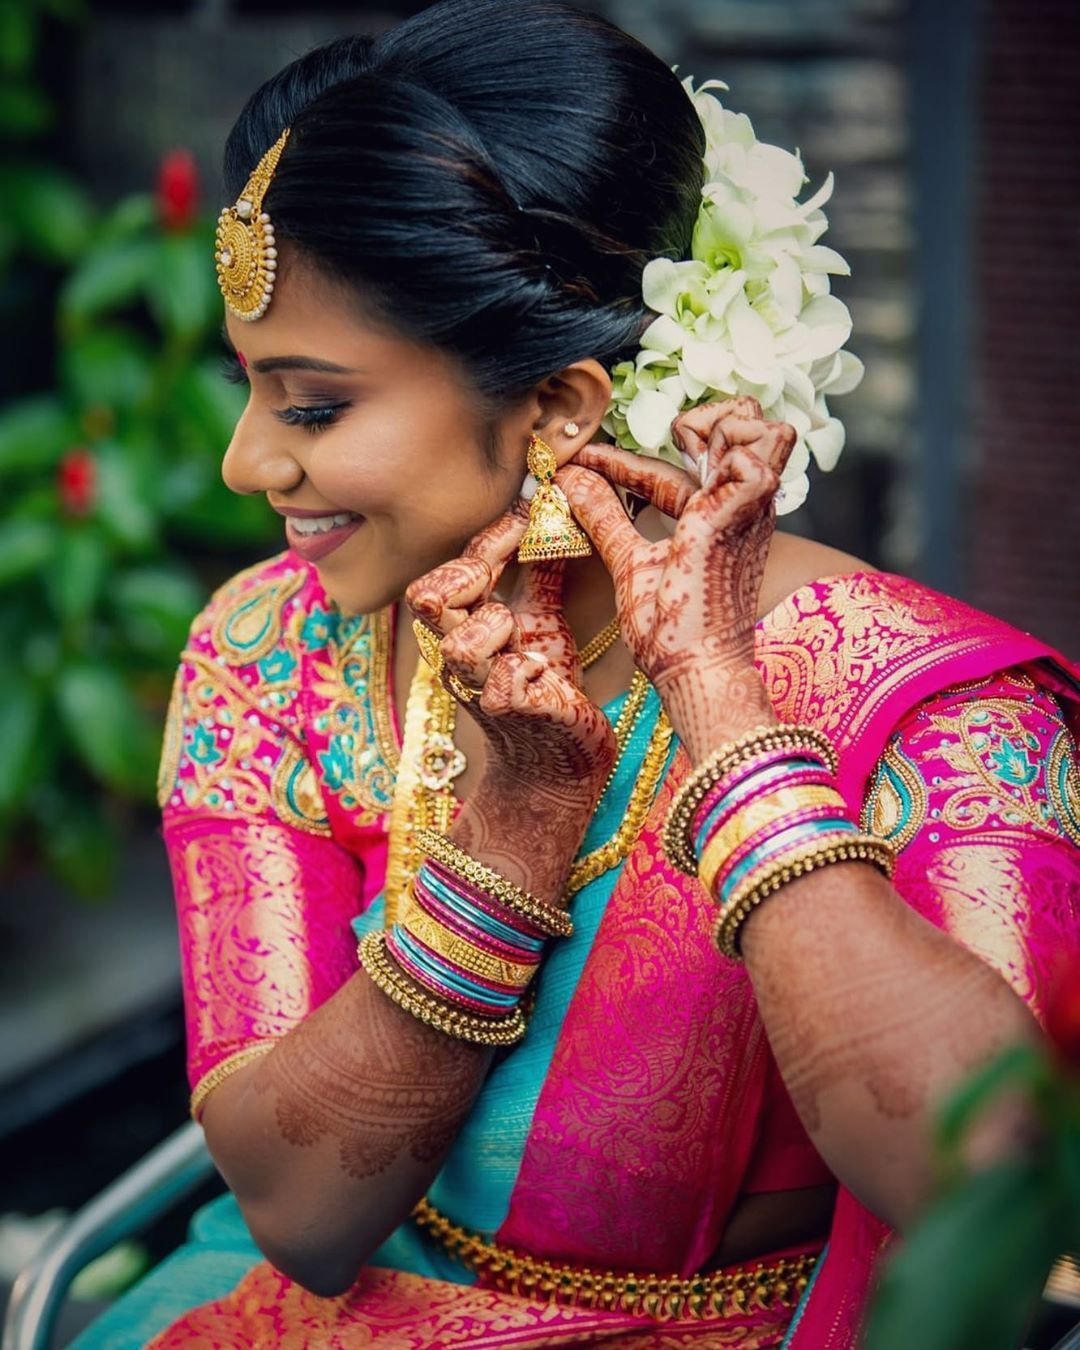 Pin by Kavithra Padmanaban on Hairstyle | Asian bride, Tamil wedding, Bridal makeup